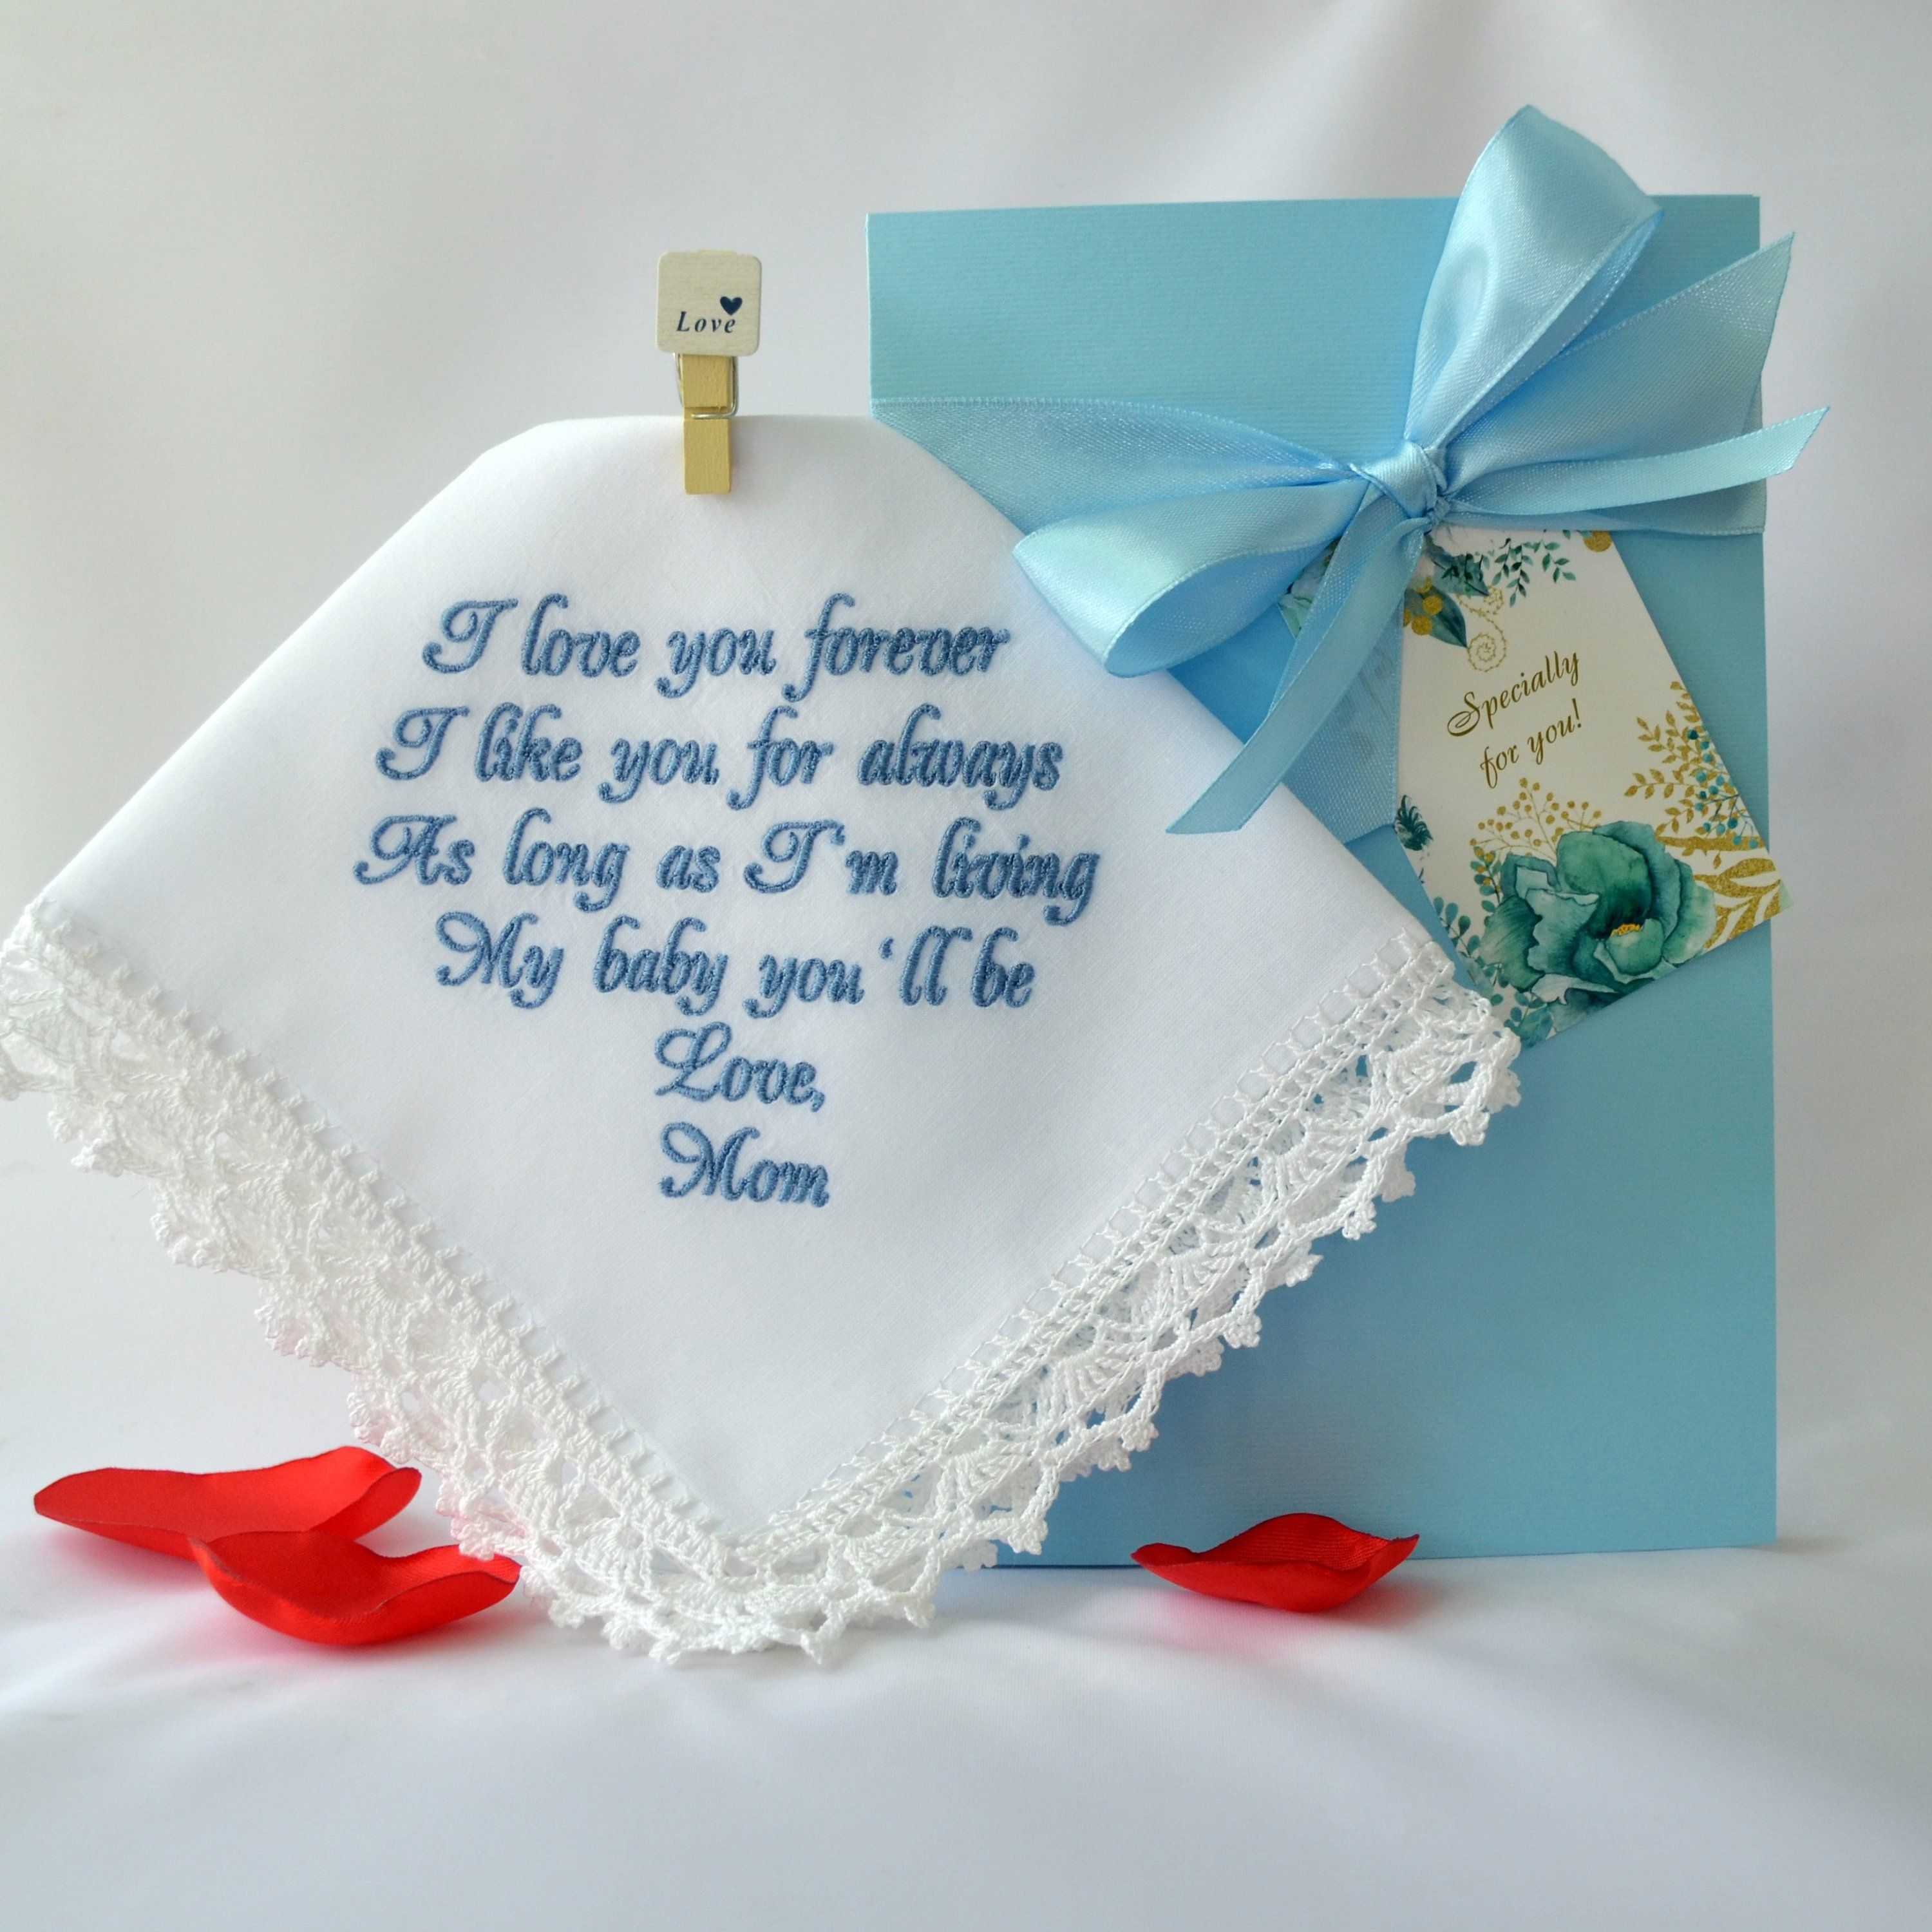 Daughter wedding gift from mom ill love you forever bride